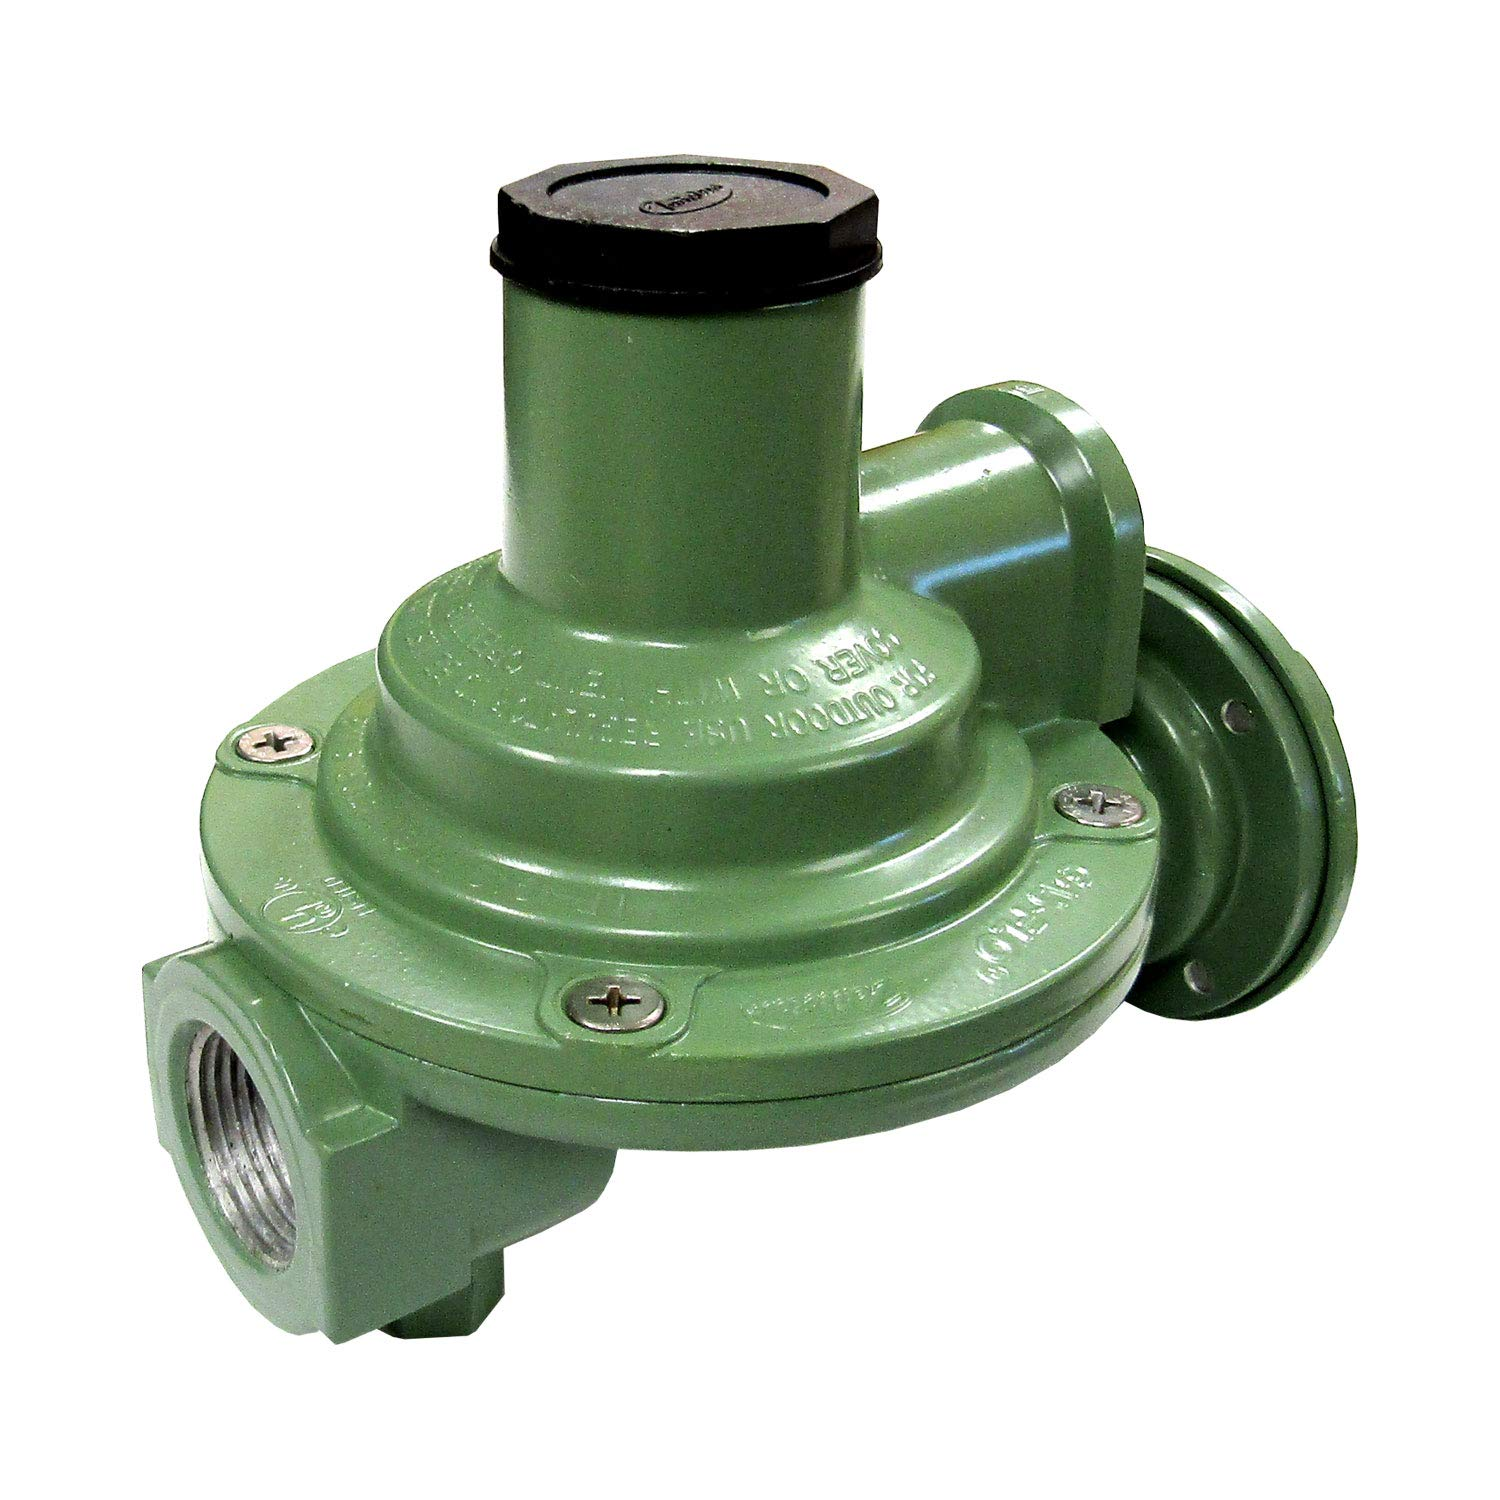 Fairview GR-92812C Compact Second Stage Low Pressure Propane Regulator by Fairview (Image #2)